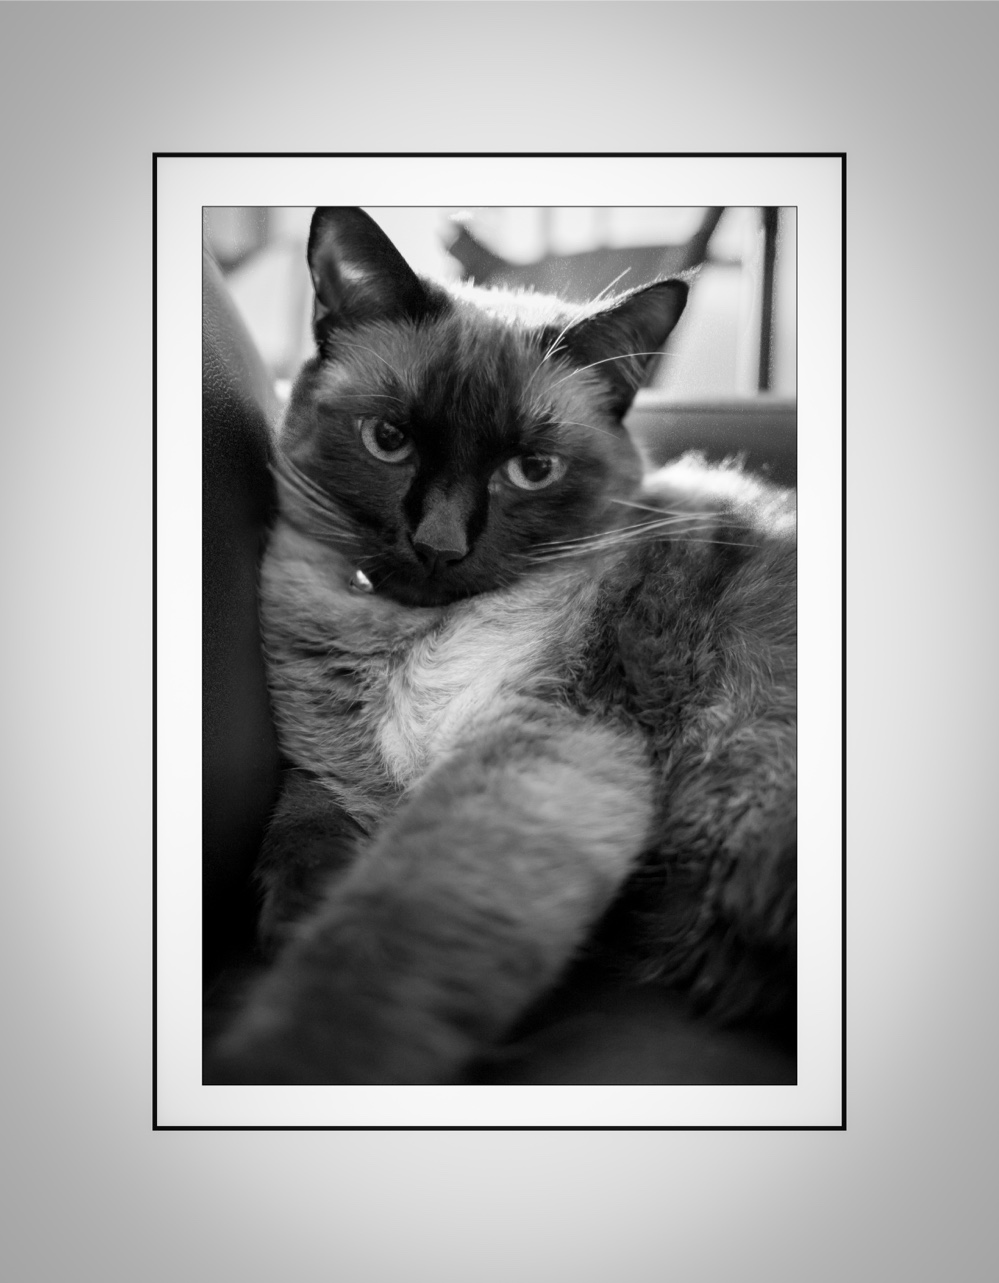 Minka pooh july 2013 framed 2-